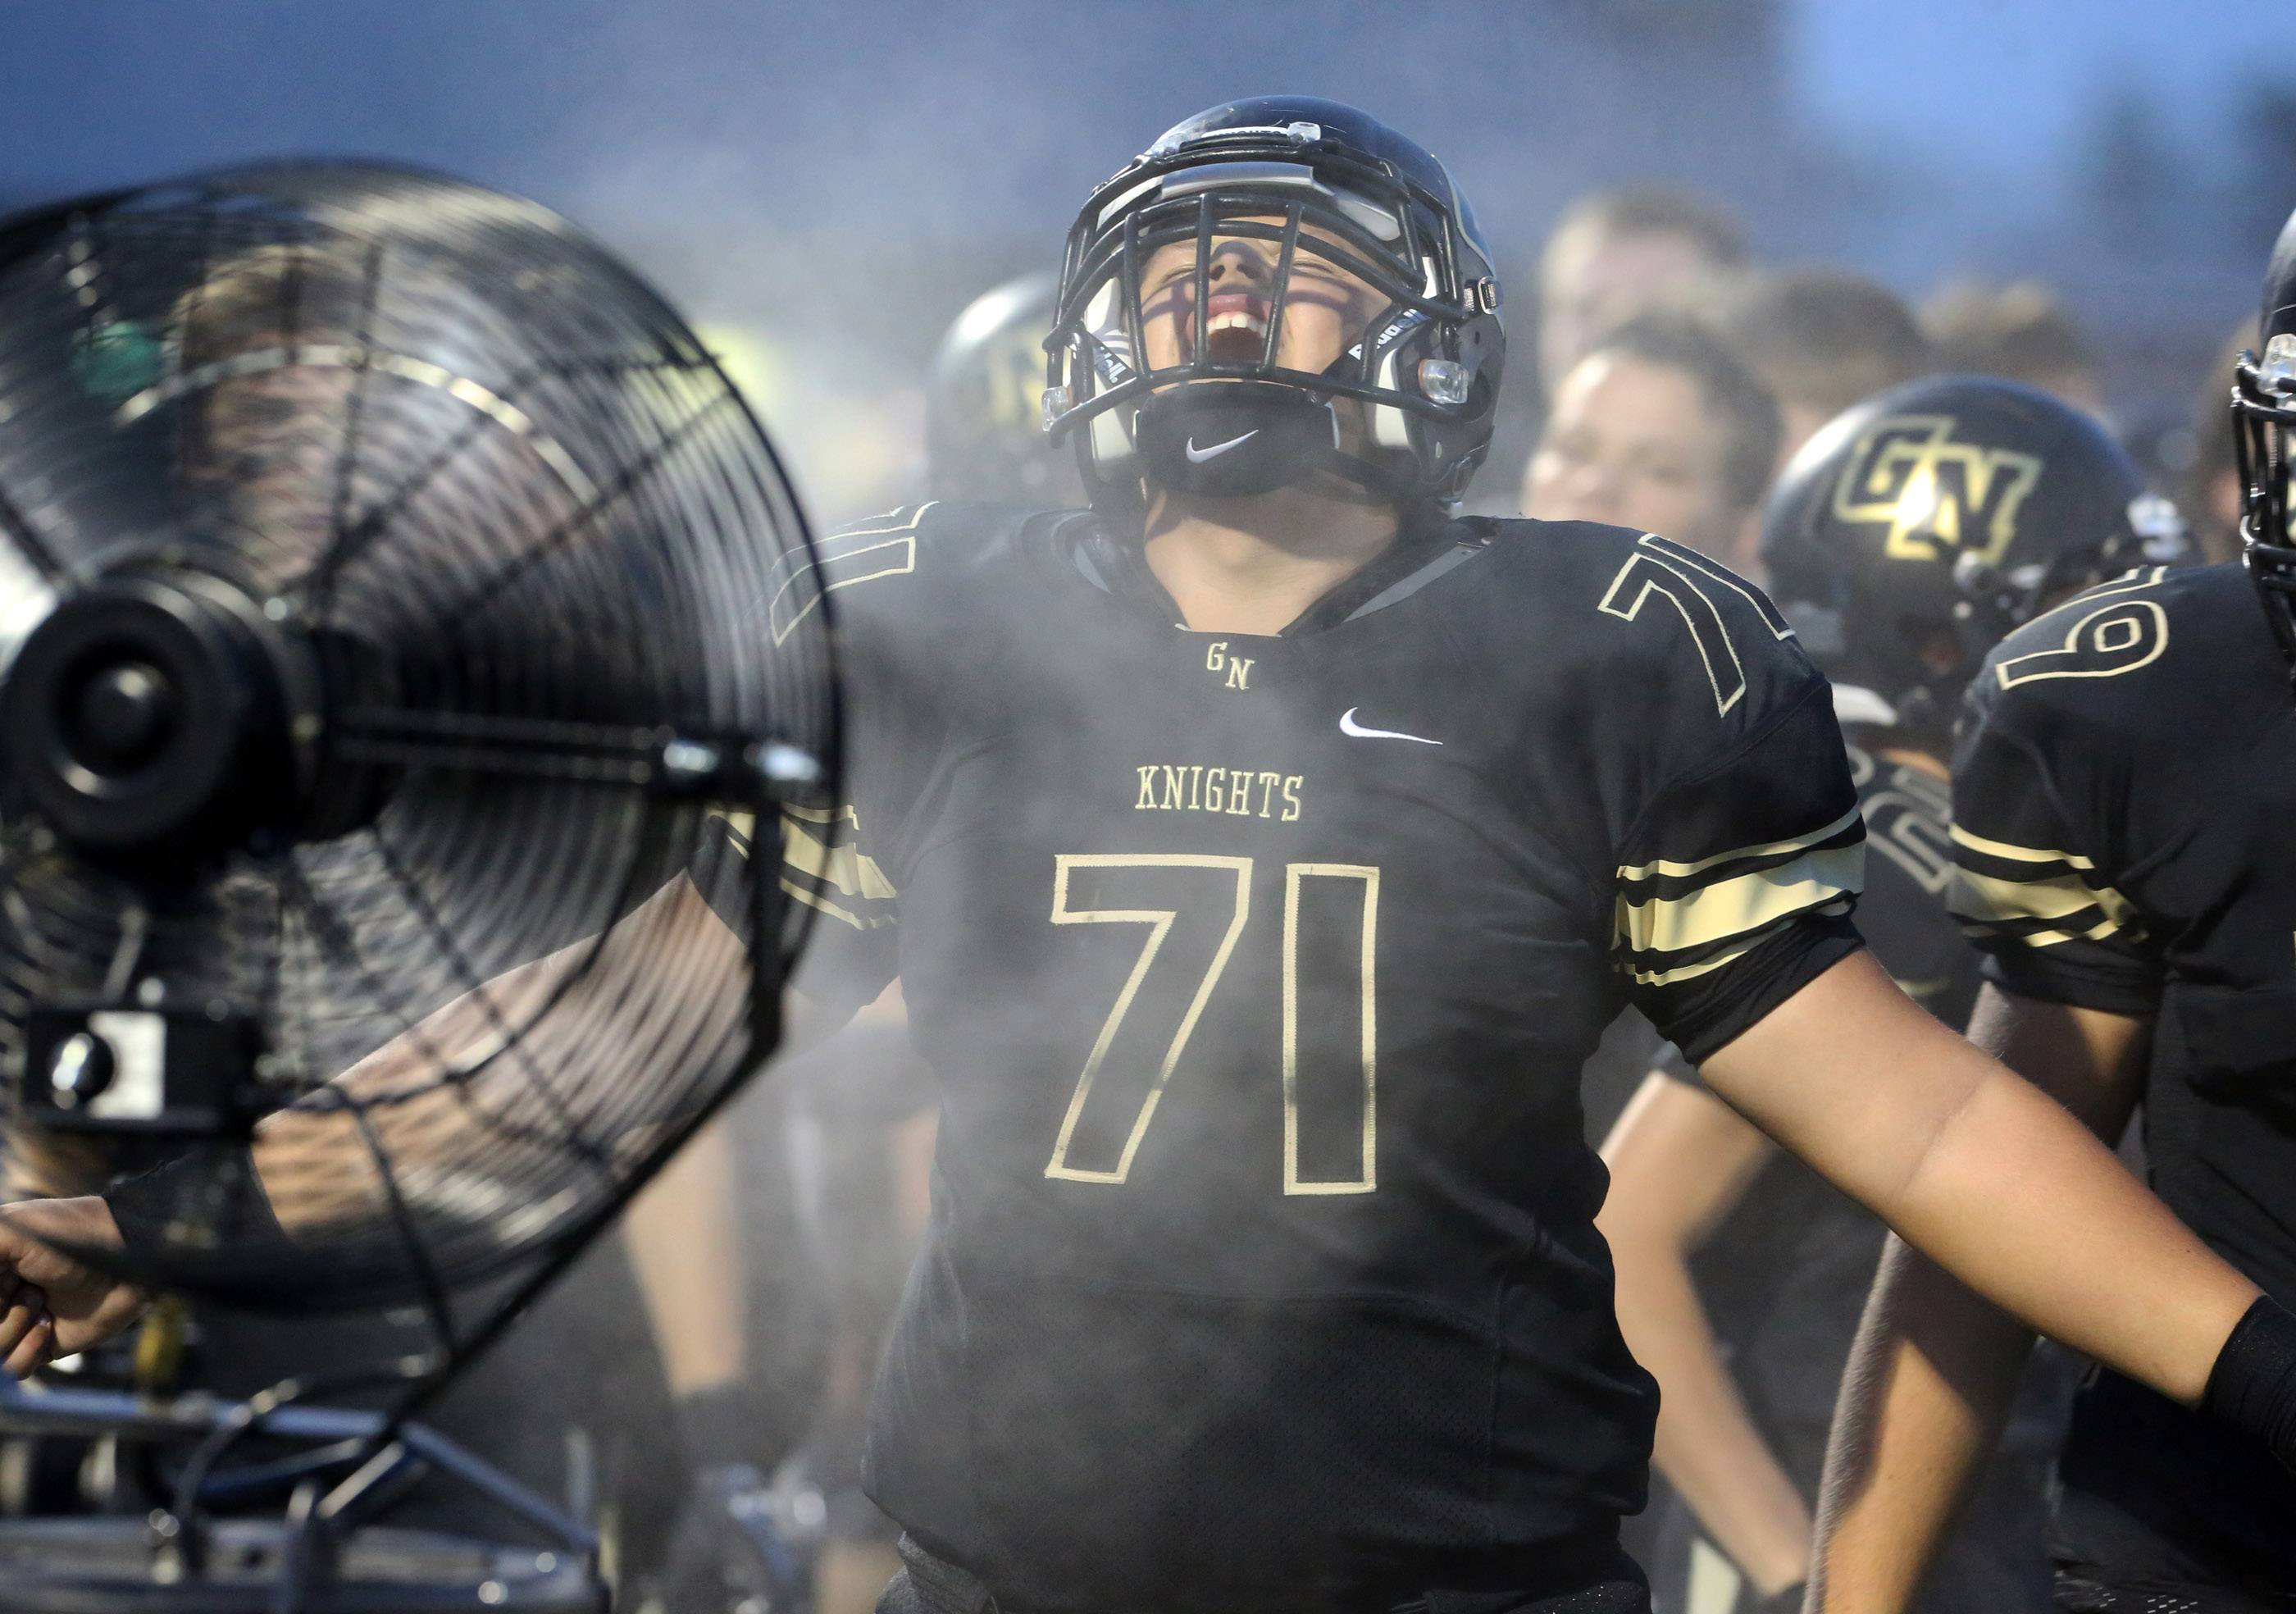 Grayslake North lineman Jack Rutkowski yells as he cools off on the sideline.